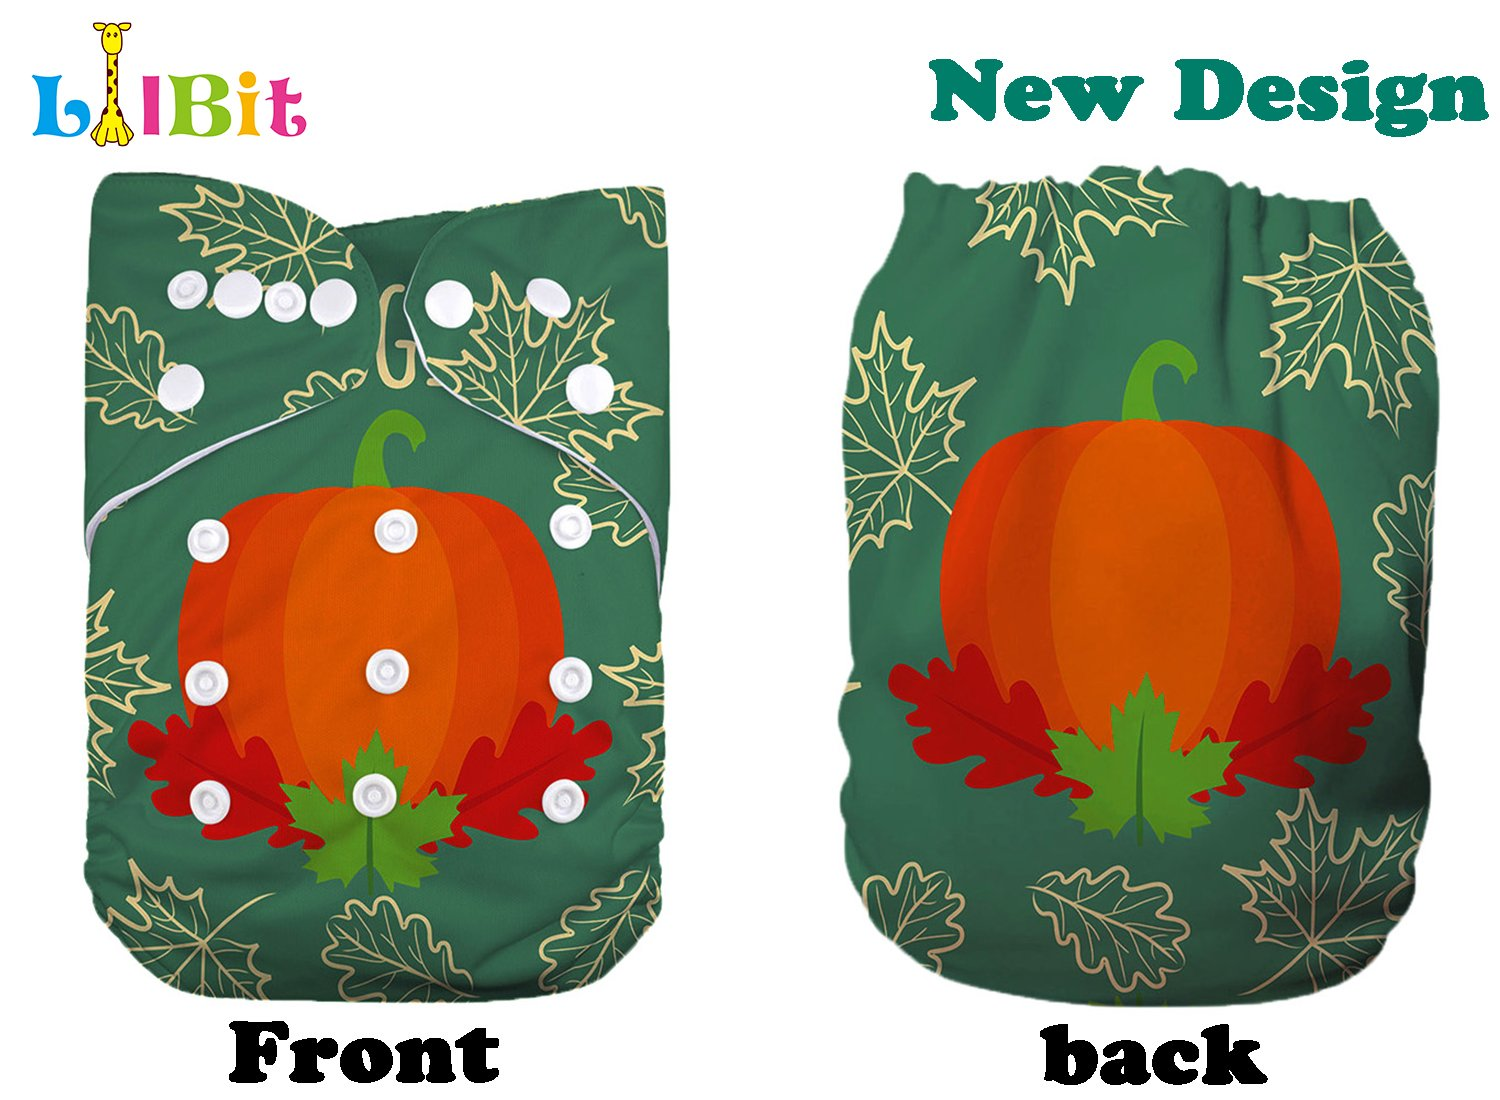 CH04 Lilbit Merry Christmas Baby Cloth Diapers